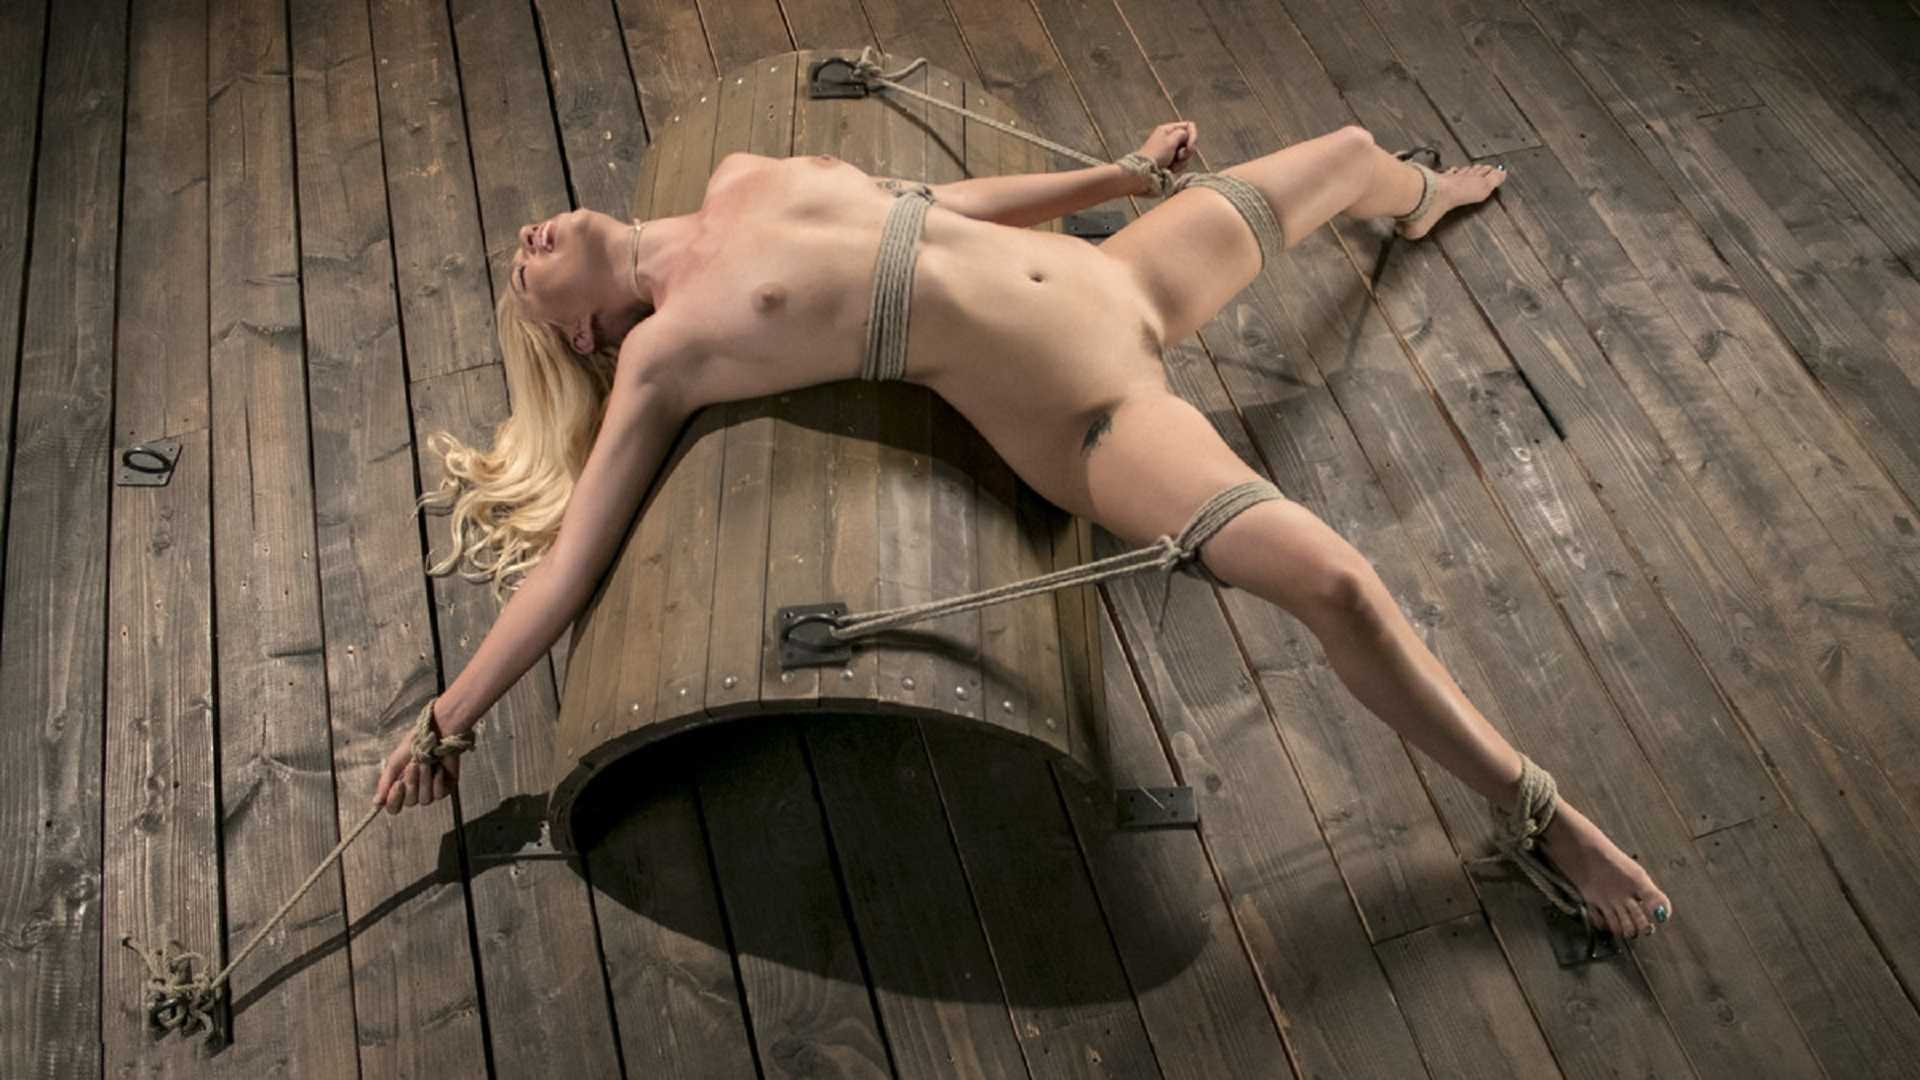 Sexy Blonde Mistres Submits to Rope Bondage and Suffering – Lyra Law, The Pope | HD 720p | June 8, 2017